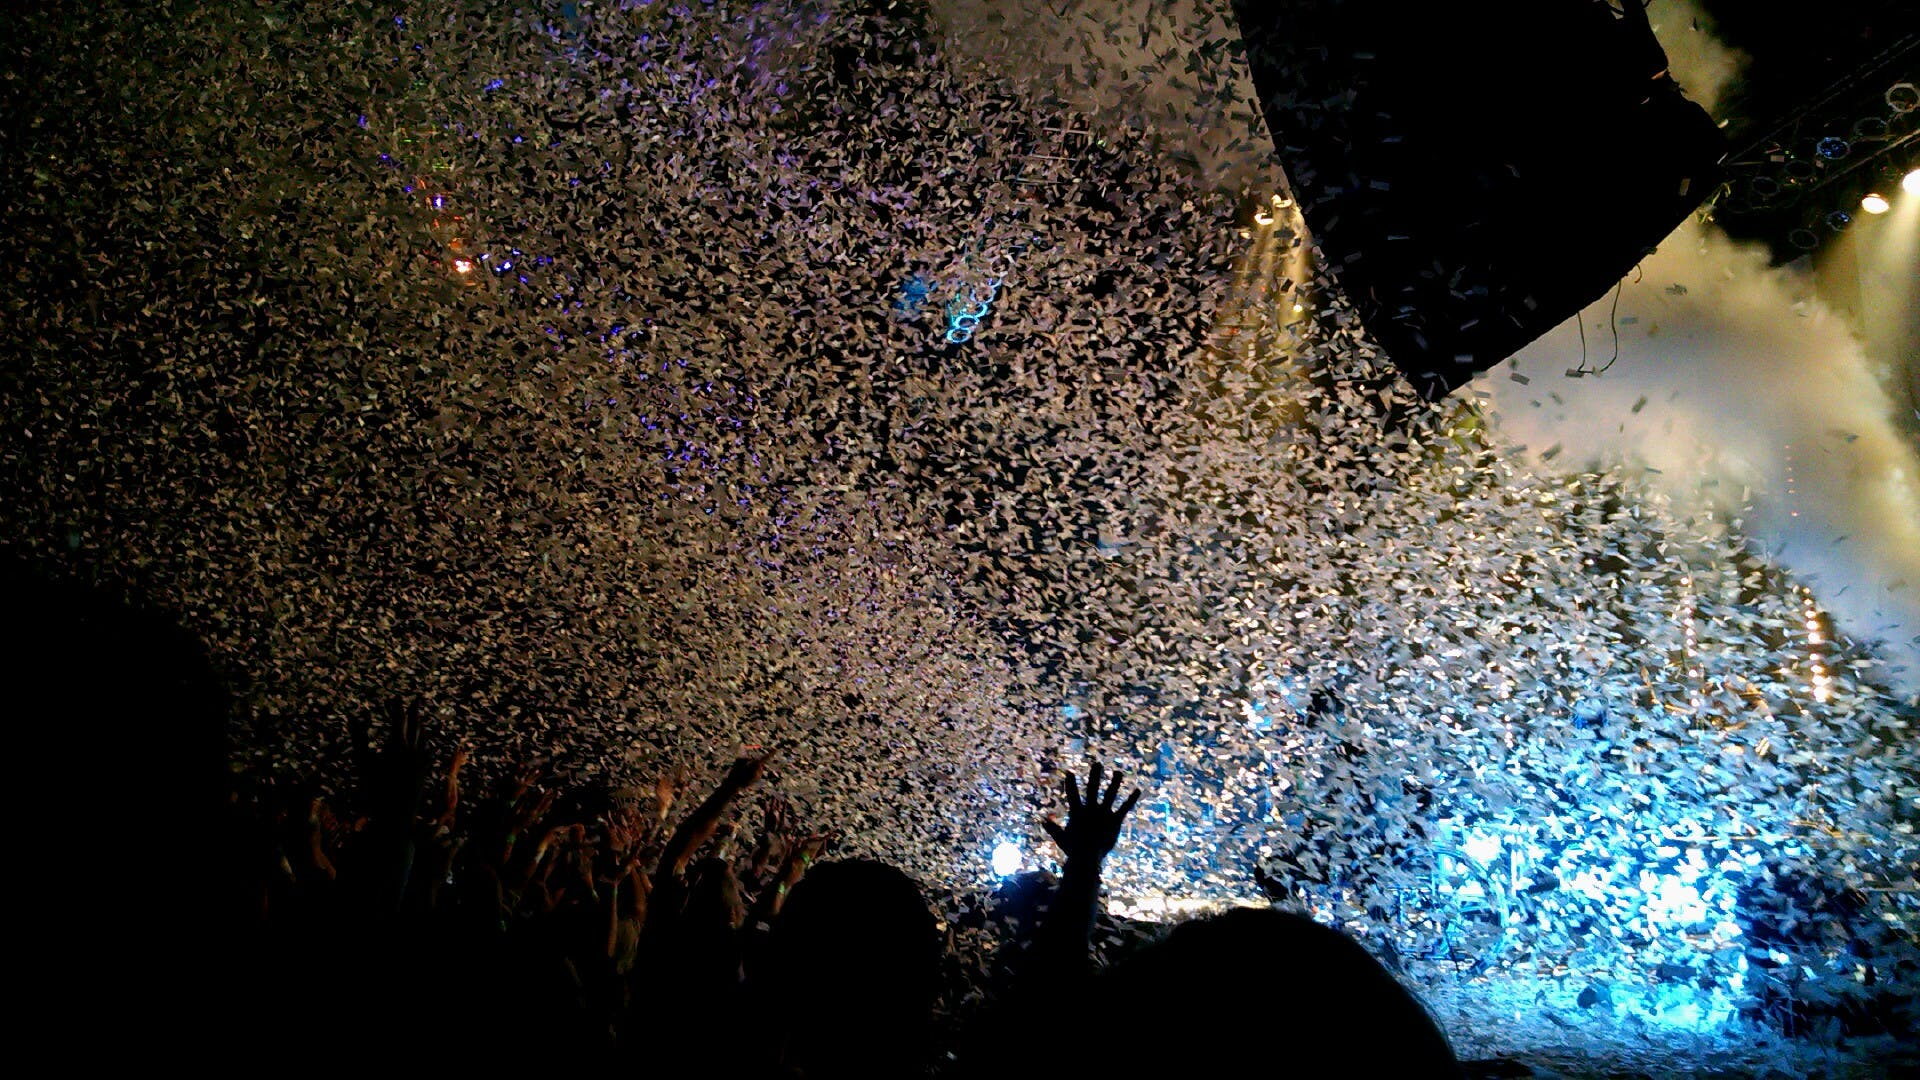 Free stock photo of night, music, show, concert